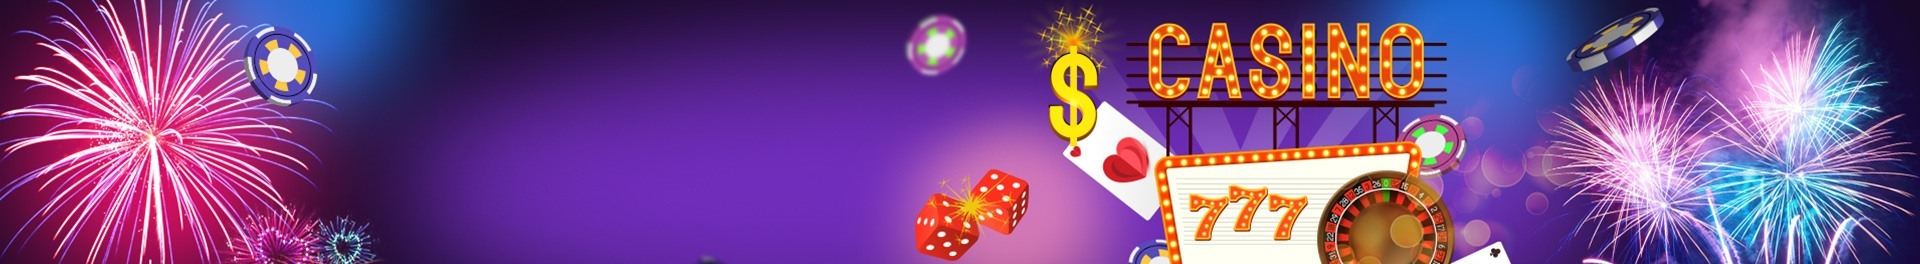 betway casino online blackjack spiel bonus